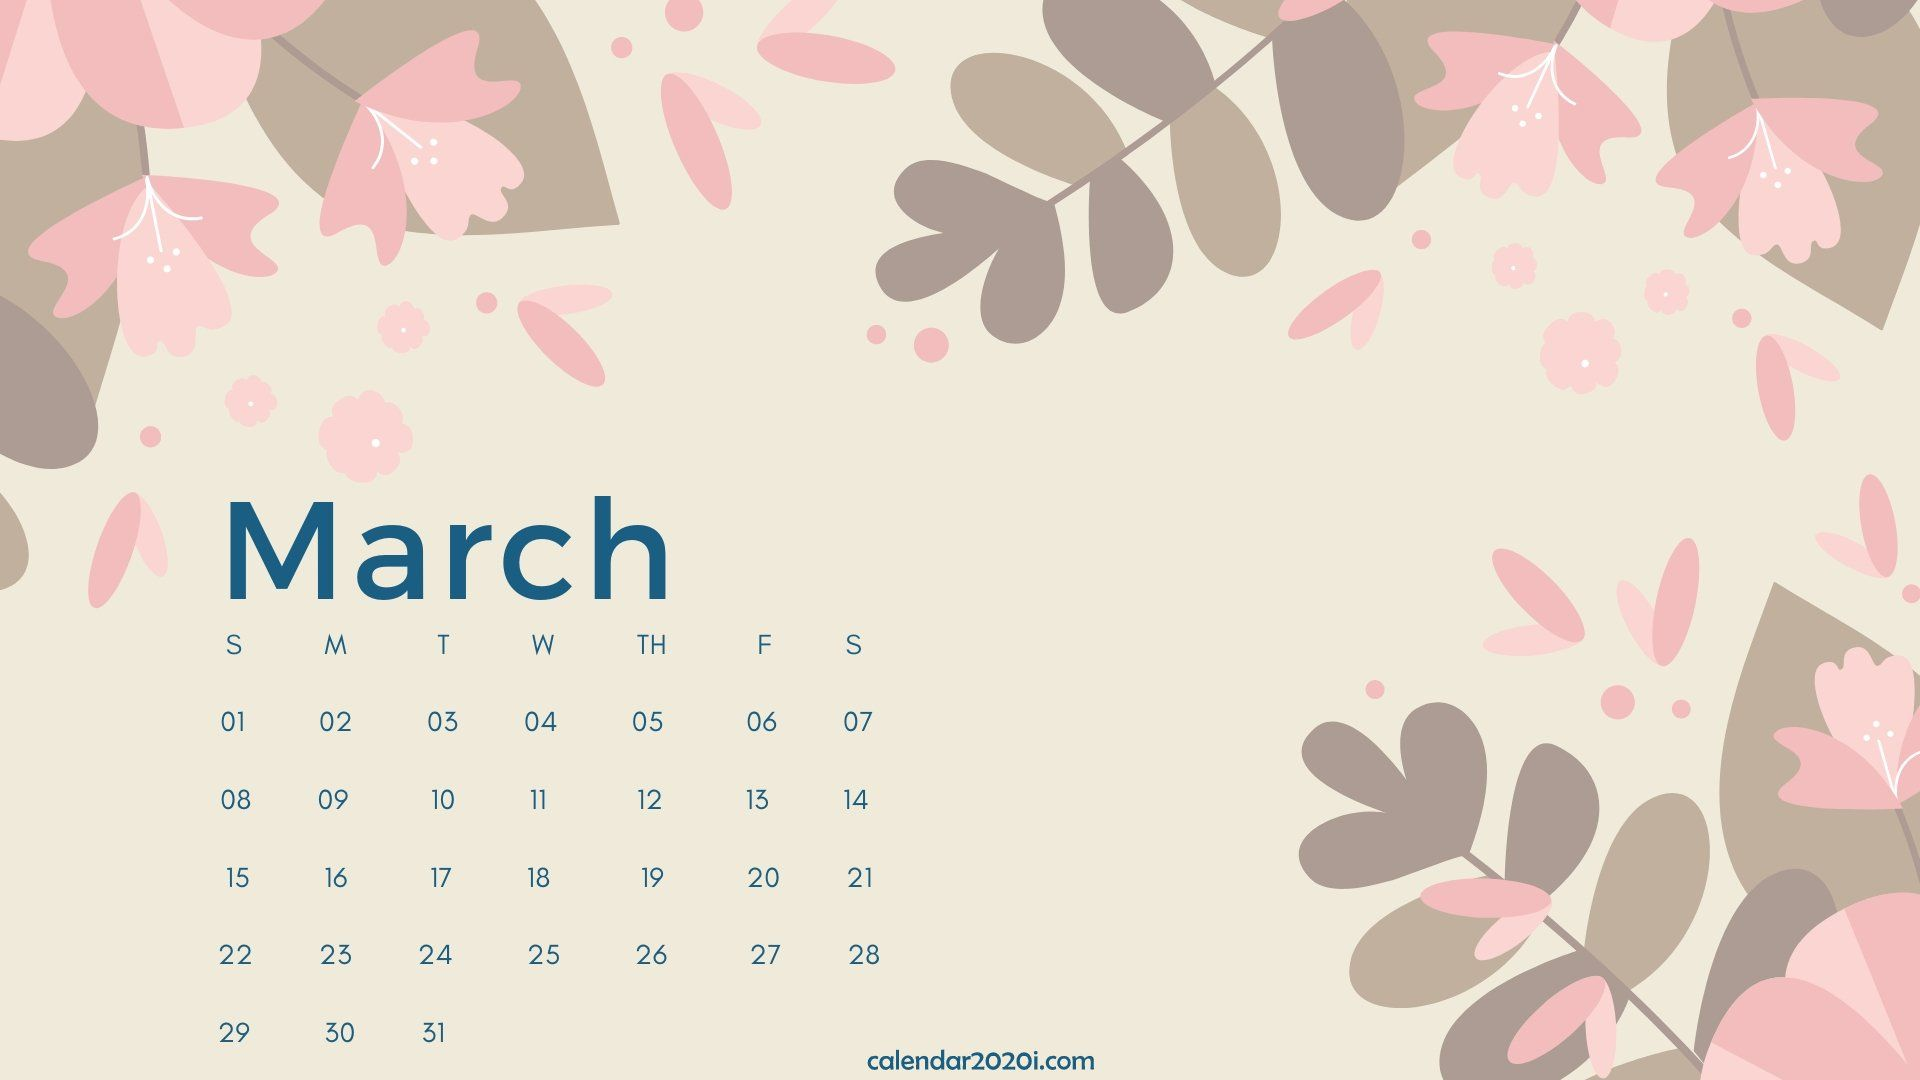 March 2020 Calendar Desktop Wallpaper Calendar printables